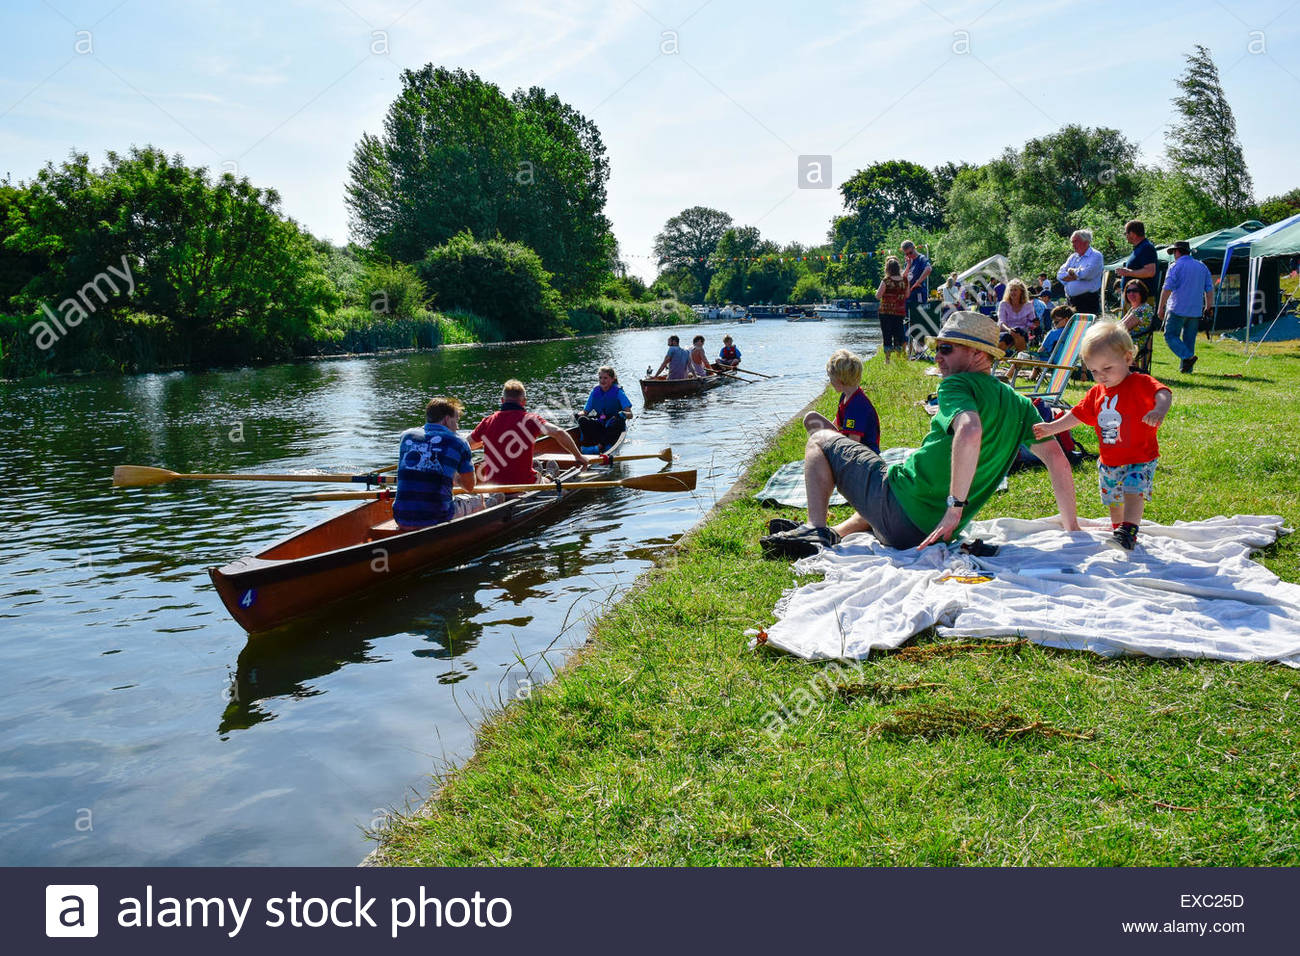 Hemingford Grey, Huntingdon, Cambridgeshire, UK. 11th July, 2015. Hemingfords' Regatta. Competitors take part - Stock Image